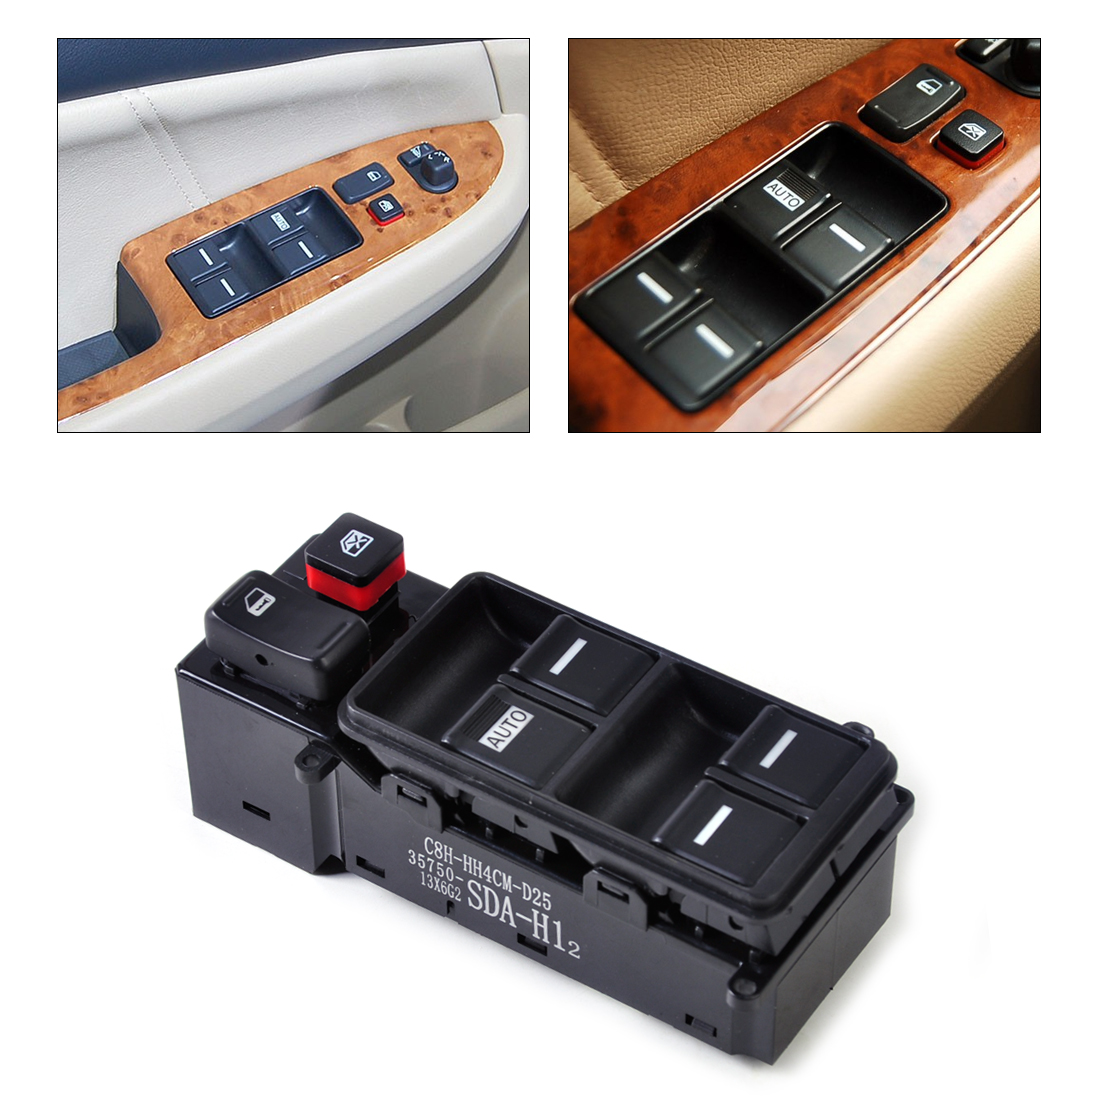 Compra honda interruptor de la ventana online al por mayor for 1994 honda accord power window switch